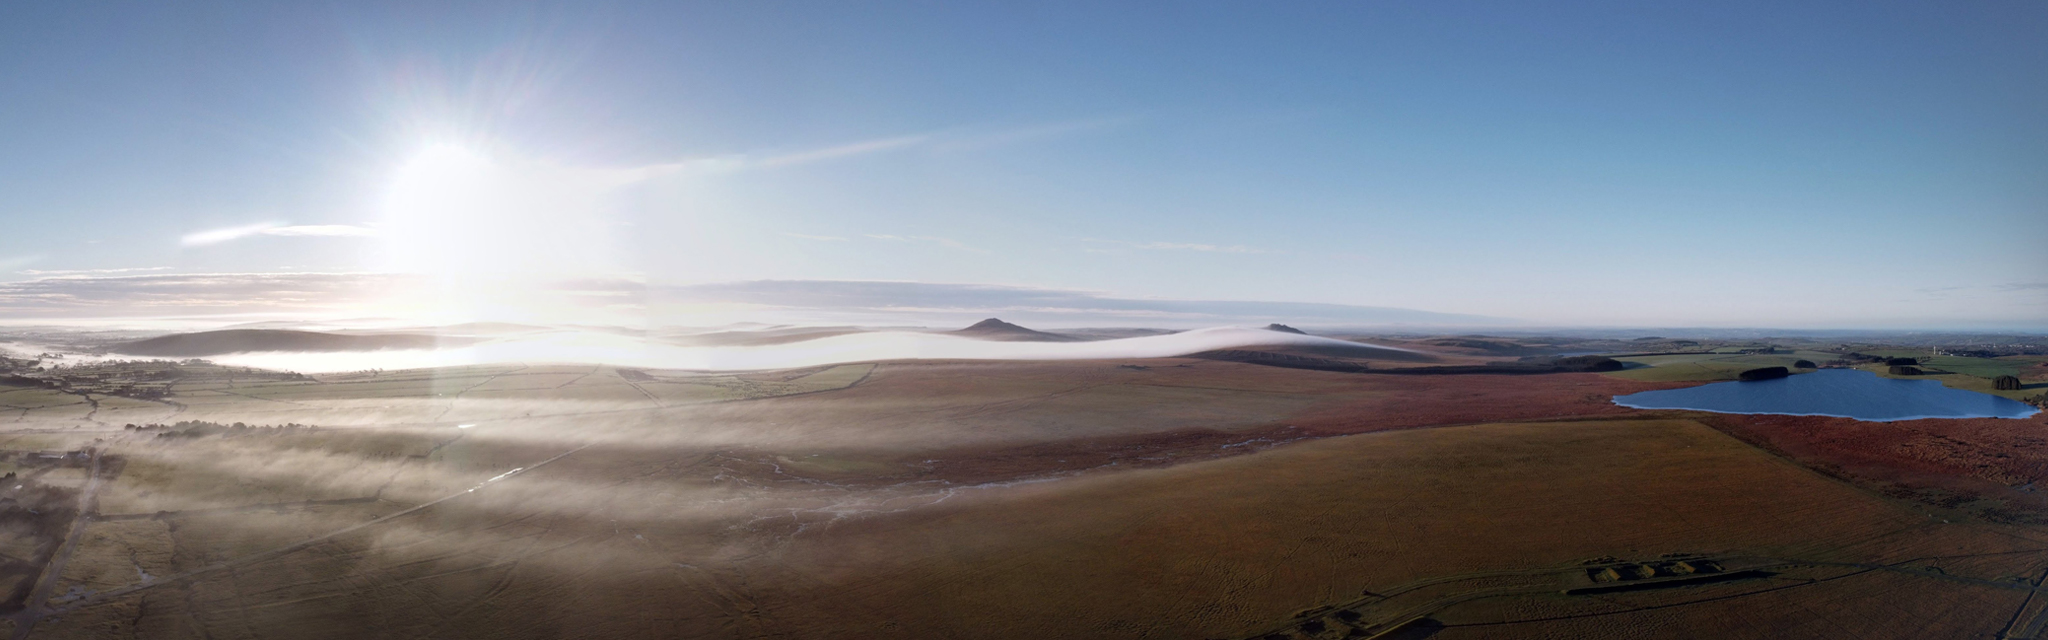 Panoramic view of Bodmin Moor in North Cornwall